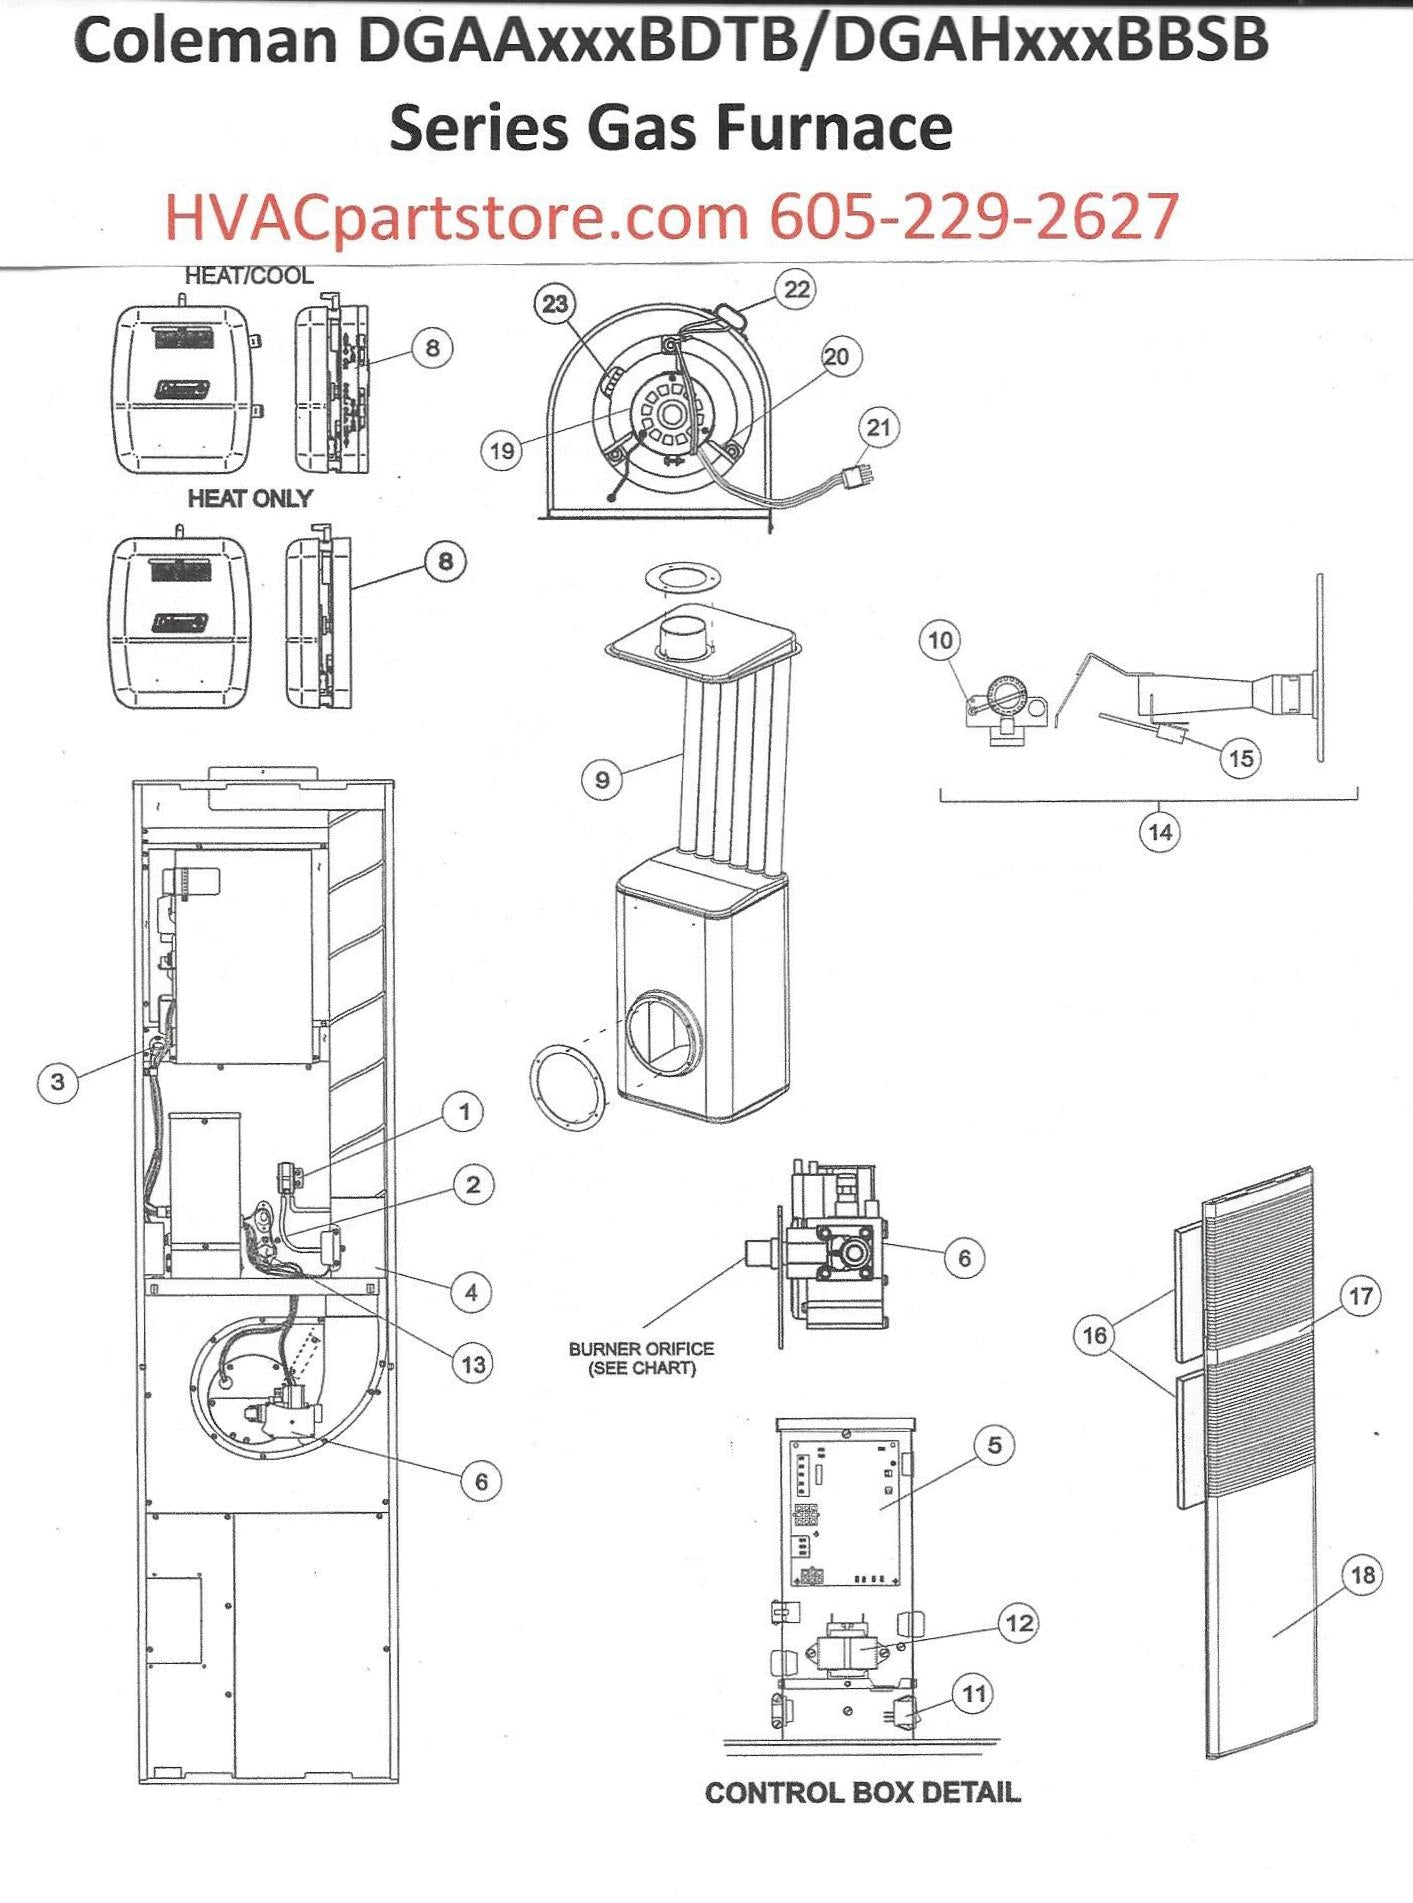 Wiring Diagram For Coleman Eb20b also Older Gas Furnace Wiring Diagram To Label Beauteous In as well Oil Furnace Wiring additionally Furnace Wiring Diagrams additionally Nordyne E2eb 015ha Wiring Diagram. on coleman furnace wiring diagram